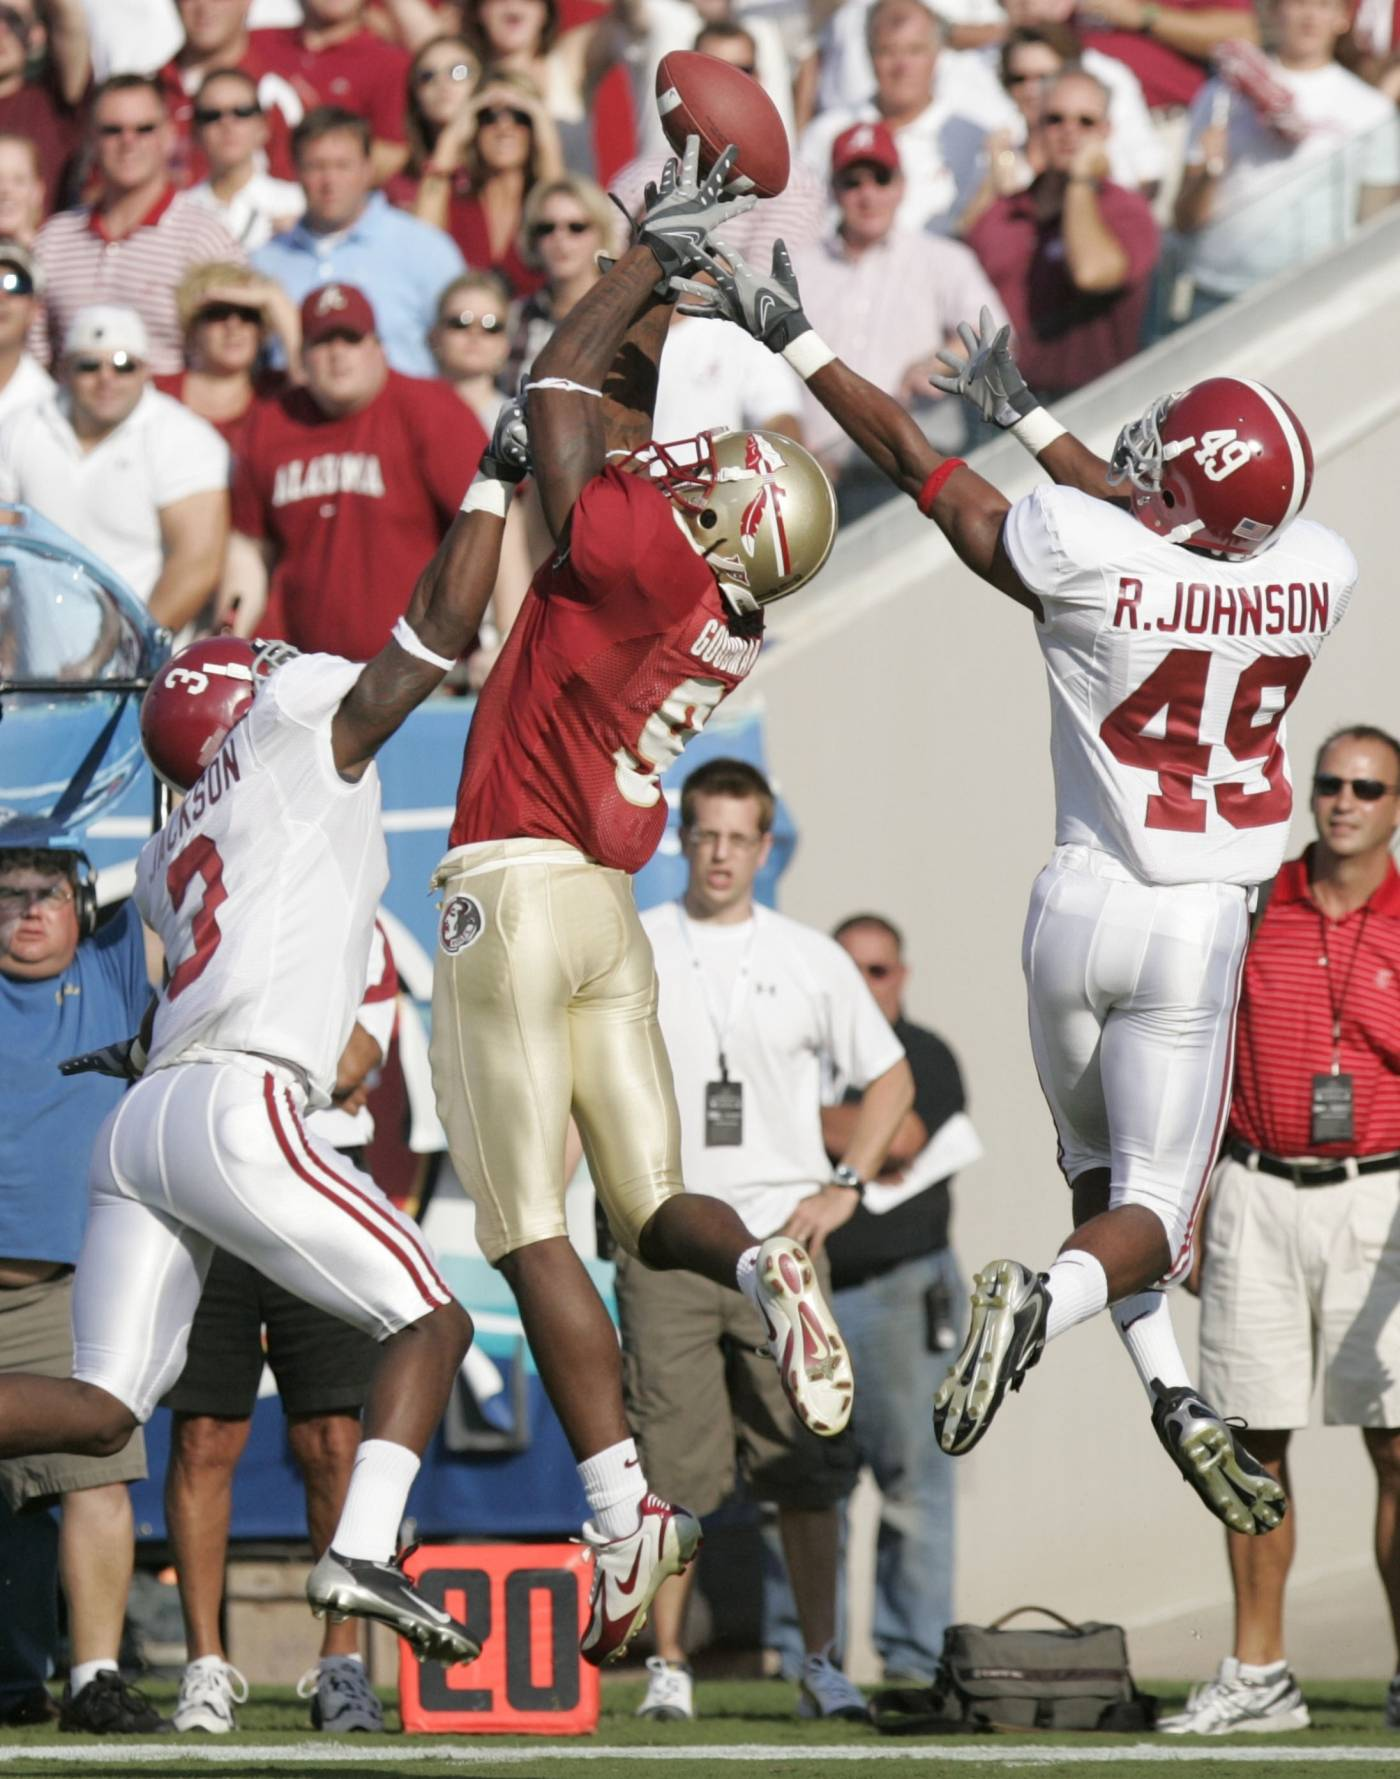 Alabama defenders Kareen Jackson, left, and Rashad Johnson, right, defend against a pass intended for Florida State receiver Richard Goodman, center, during the first quarter. The pass was incomplete. (AP Photo/Steve Cannon)